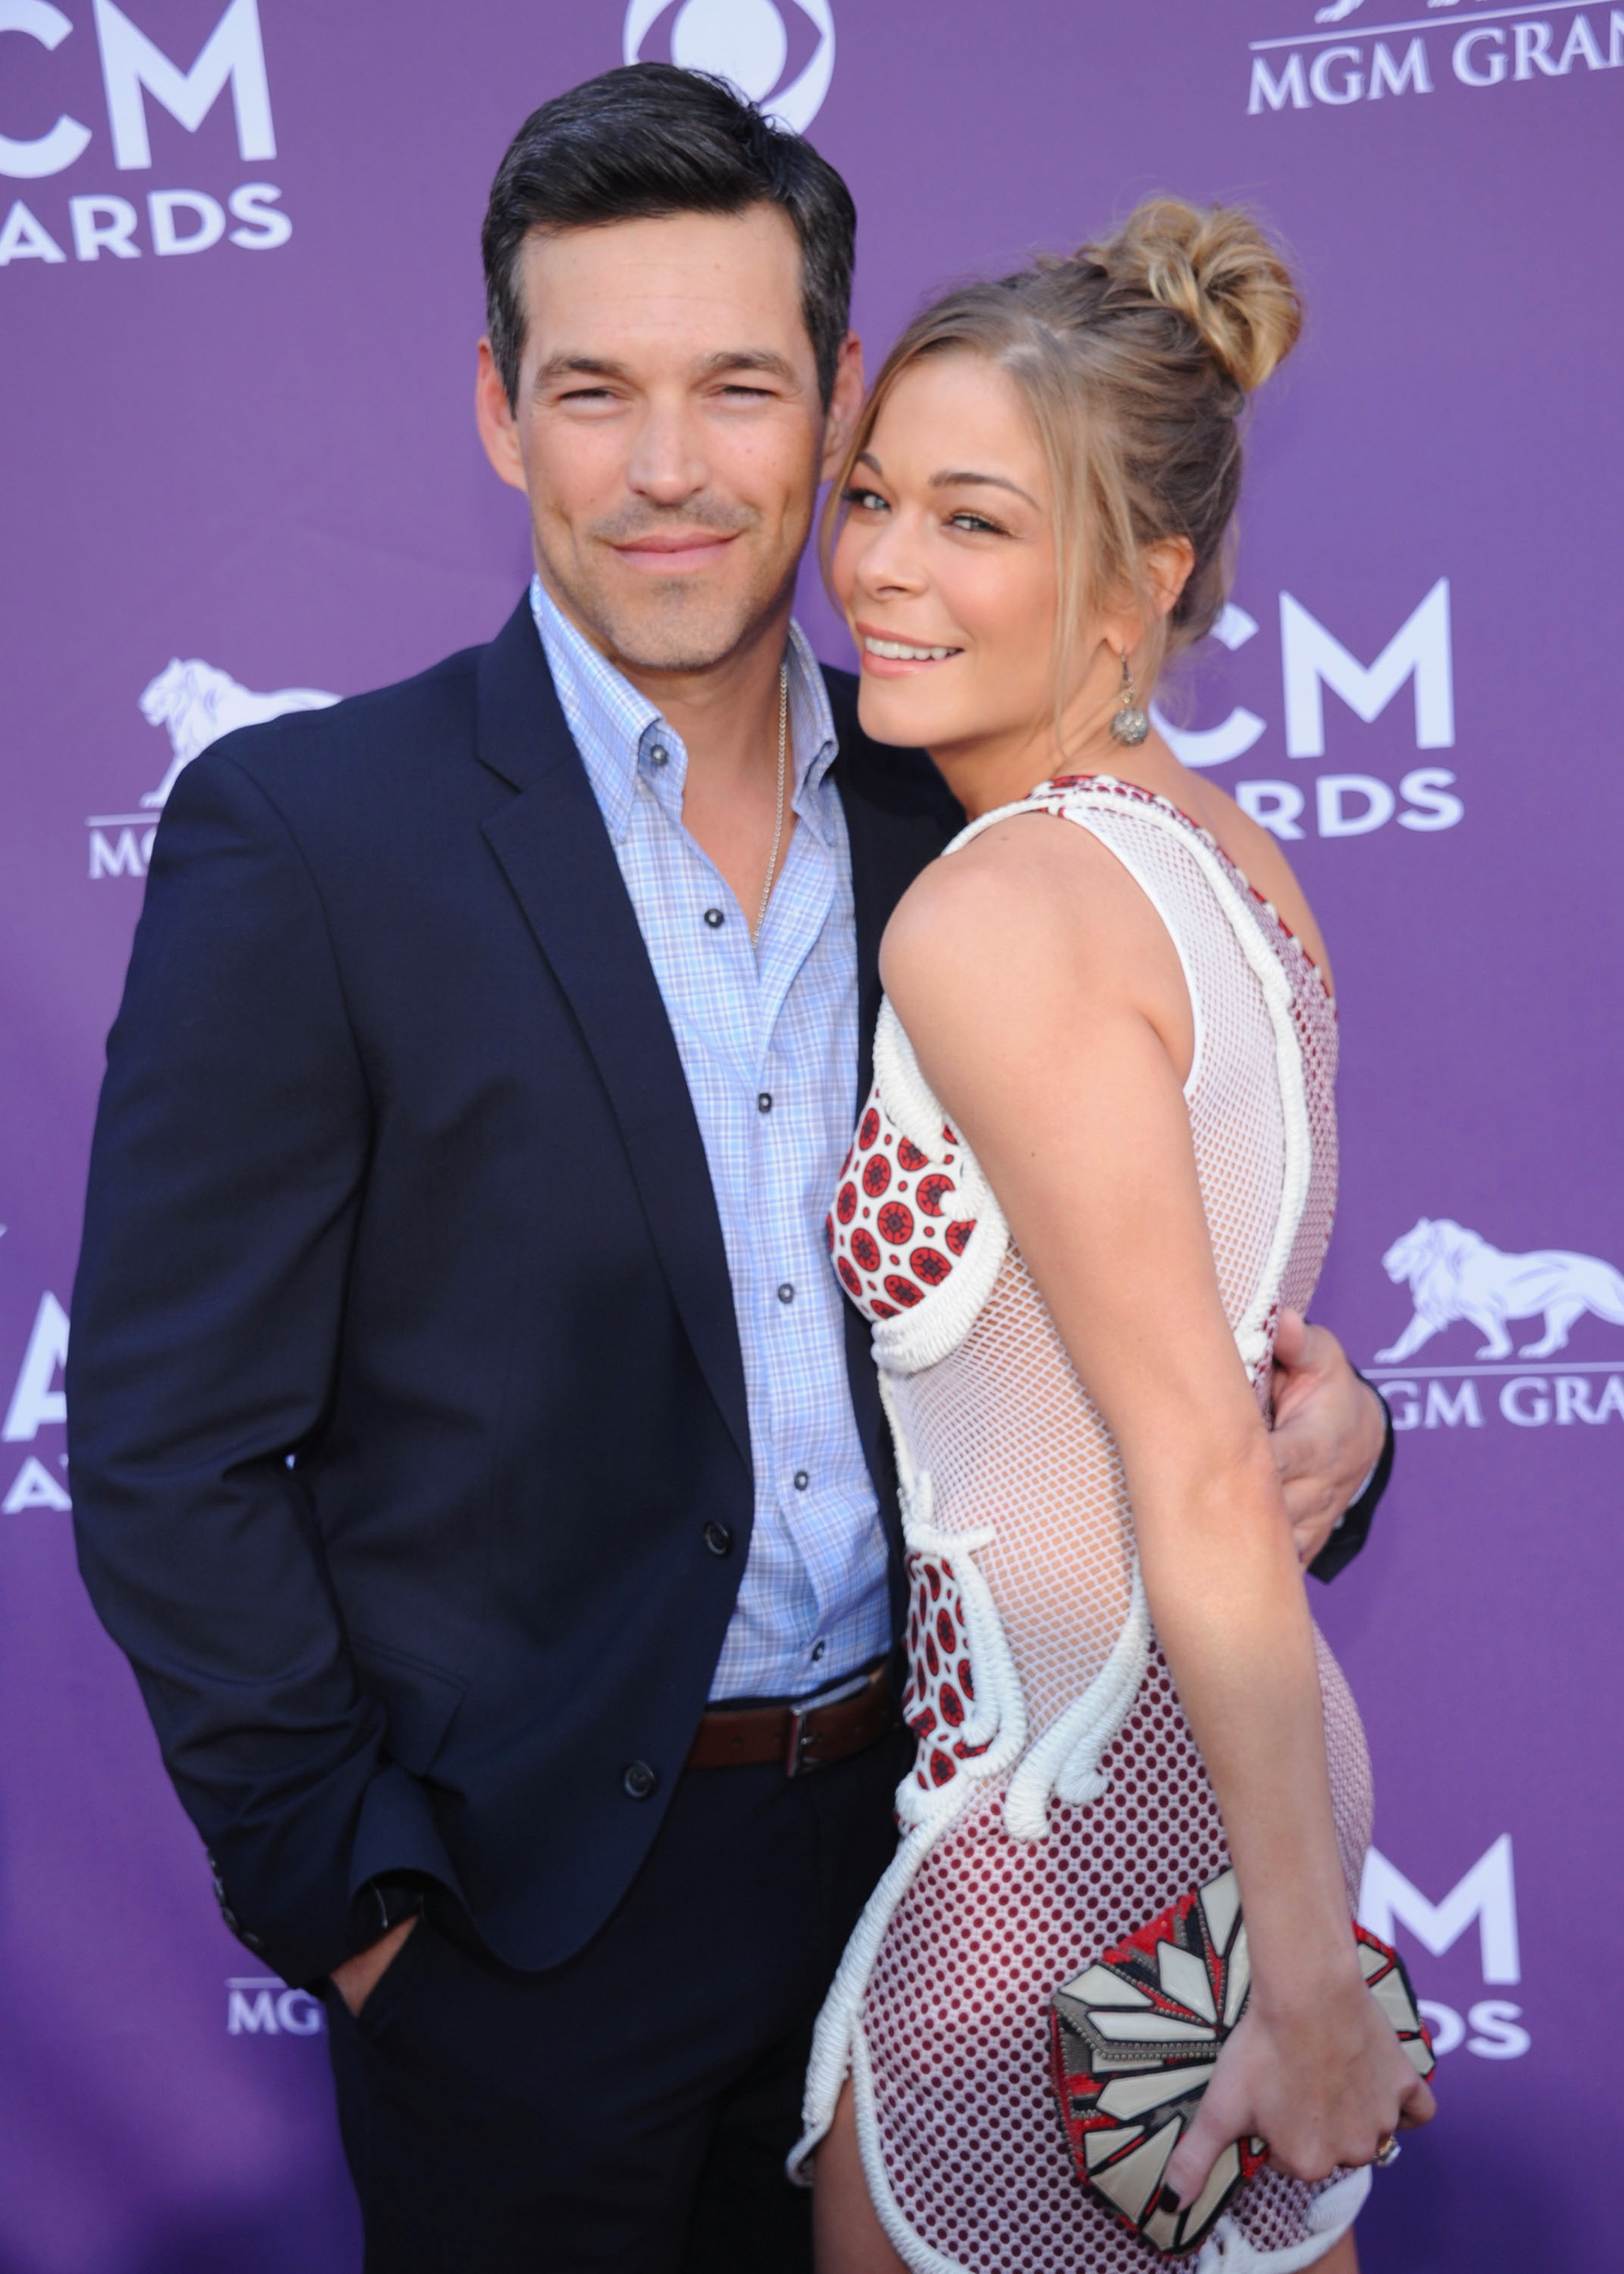 """Revisit Brandi Glanville's Feud With Eddie Cibrian and LeAnn Rimes - The actor and the country singer tied the knot at a private estate in Malibu. She gushed about the wedding on Twitter soon after: """"Eddie and I are overwhelmed by the amount of lovely well wishes. We are blessed and…. I'm Mrs. Cibrian!!! So wonderful to wake up as husband and wife. Love to all of you."""""""